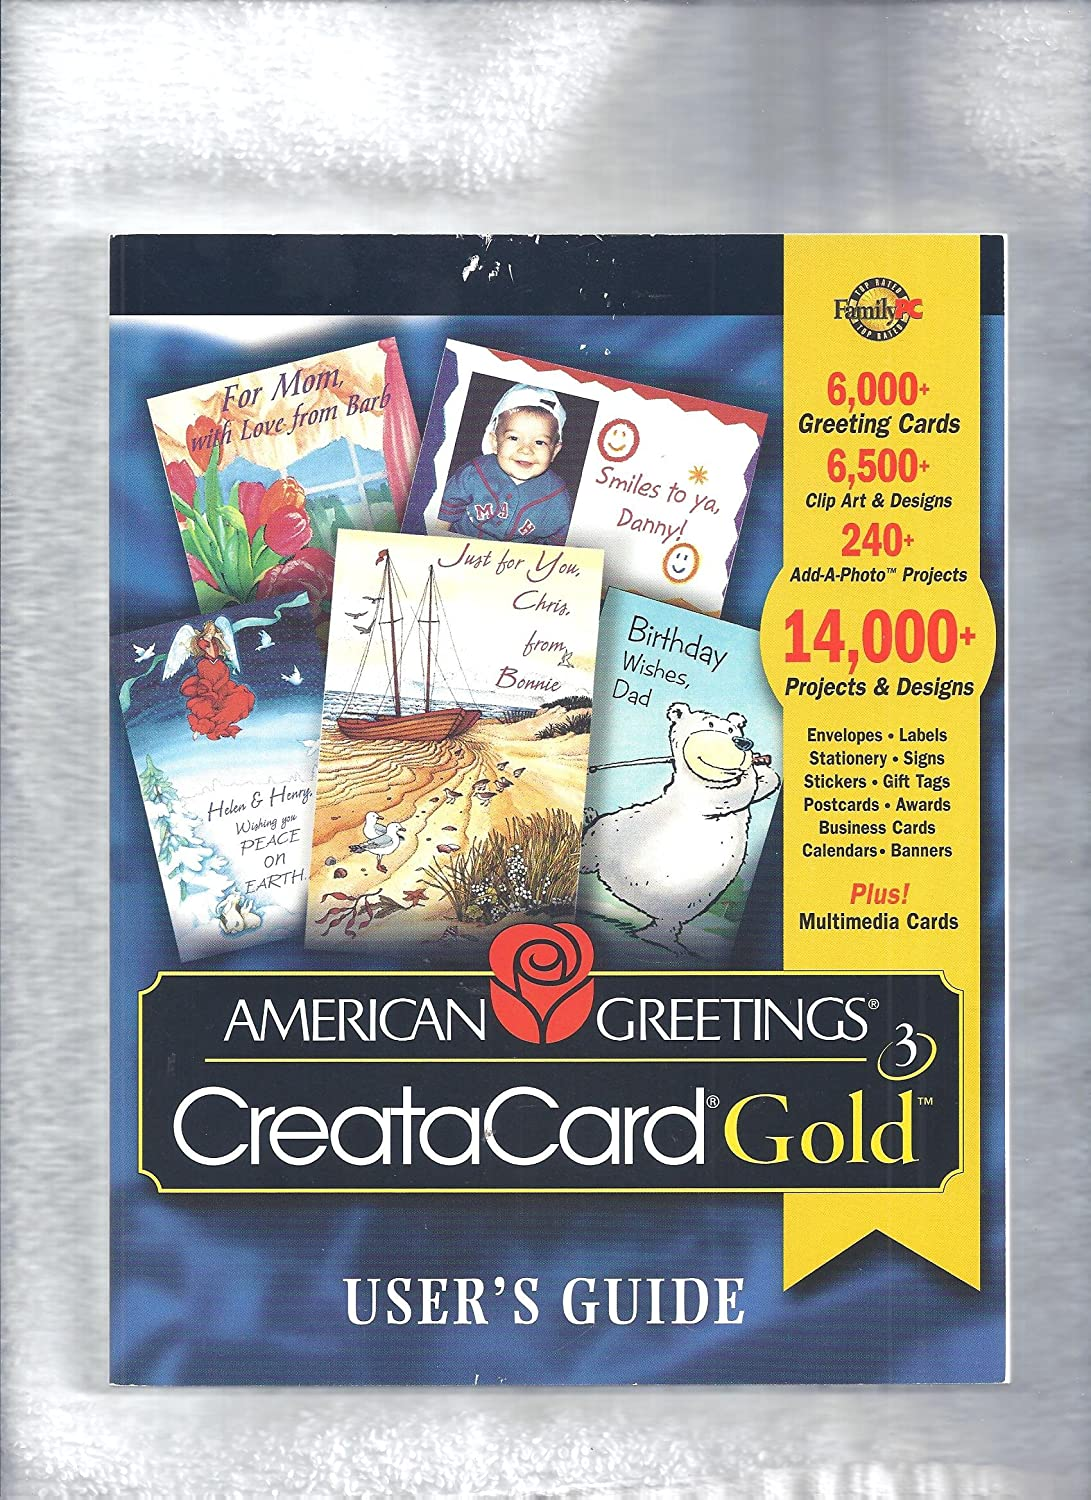 American greetings creatacard users guide gold amazon american greetings creatacard users guide gold amazon office products m4hsunfo